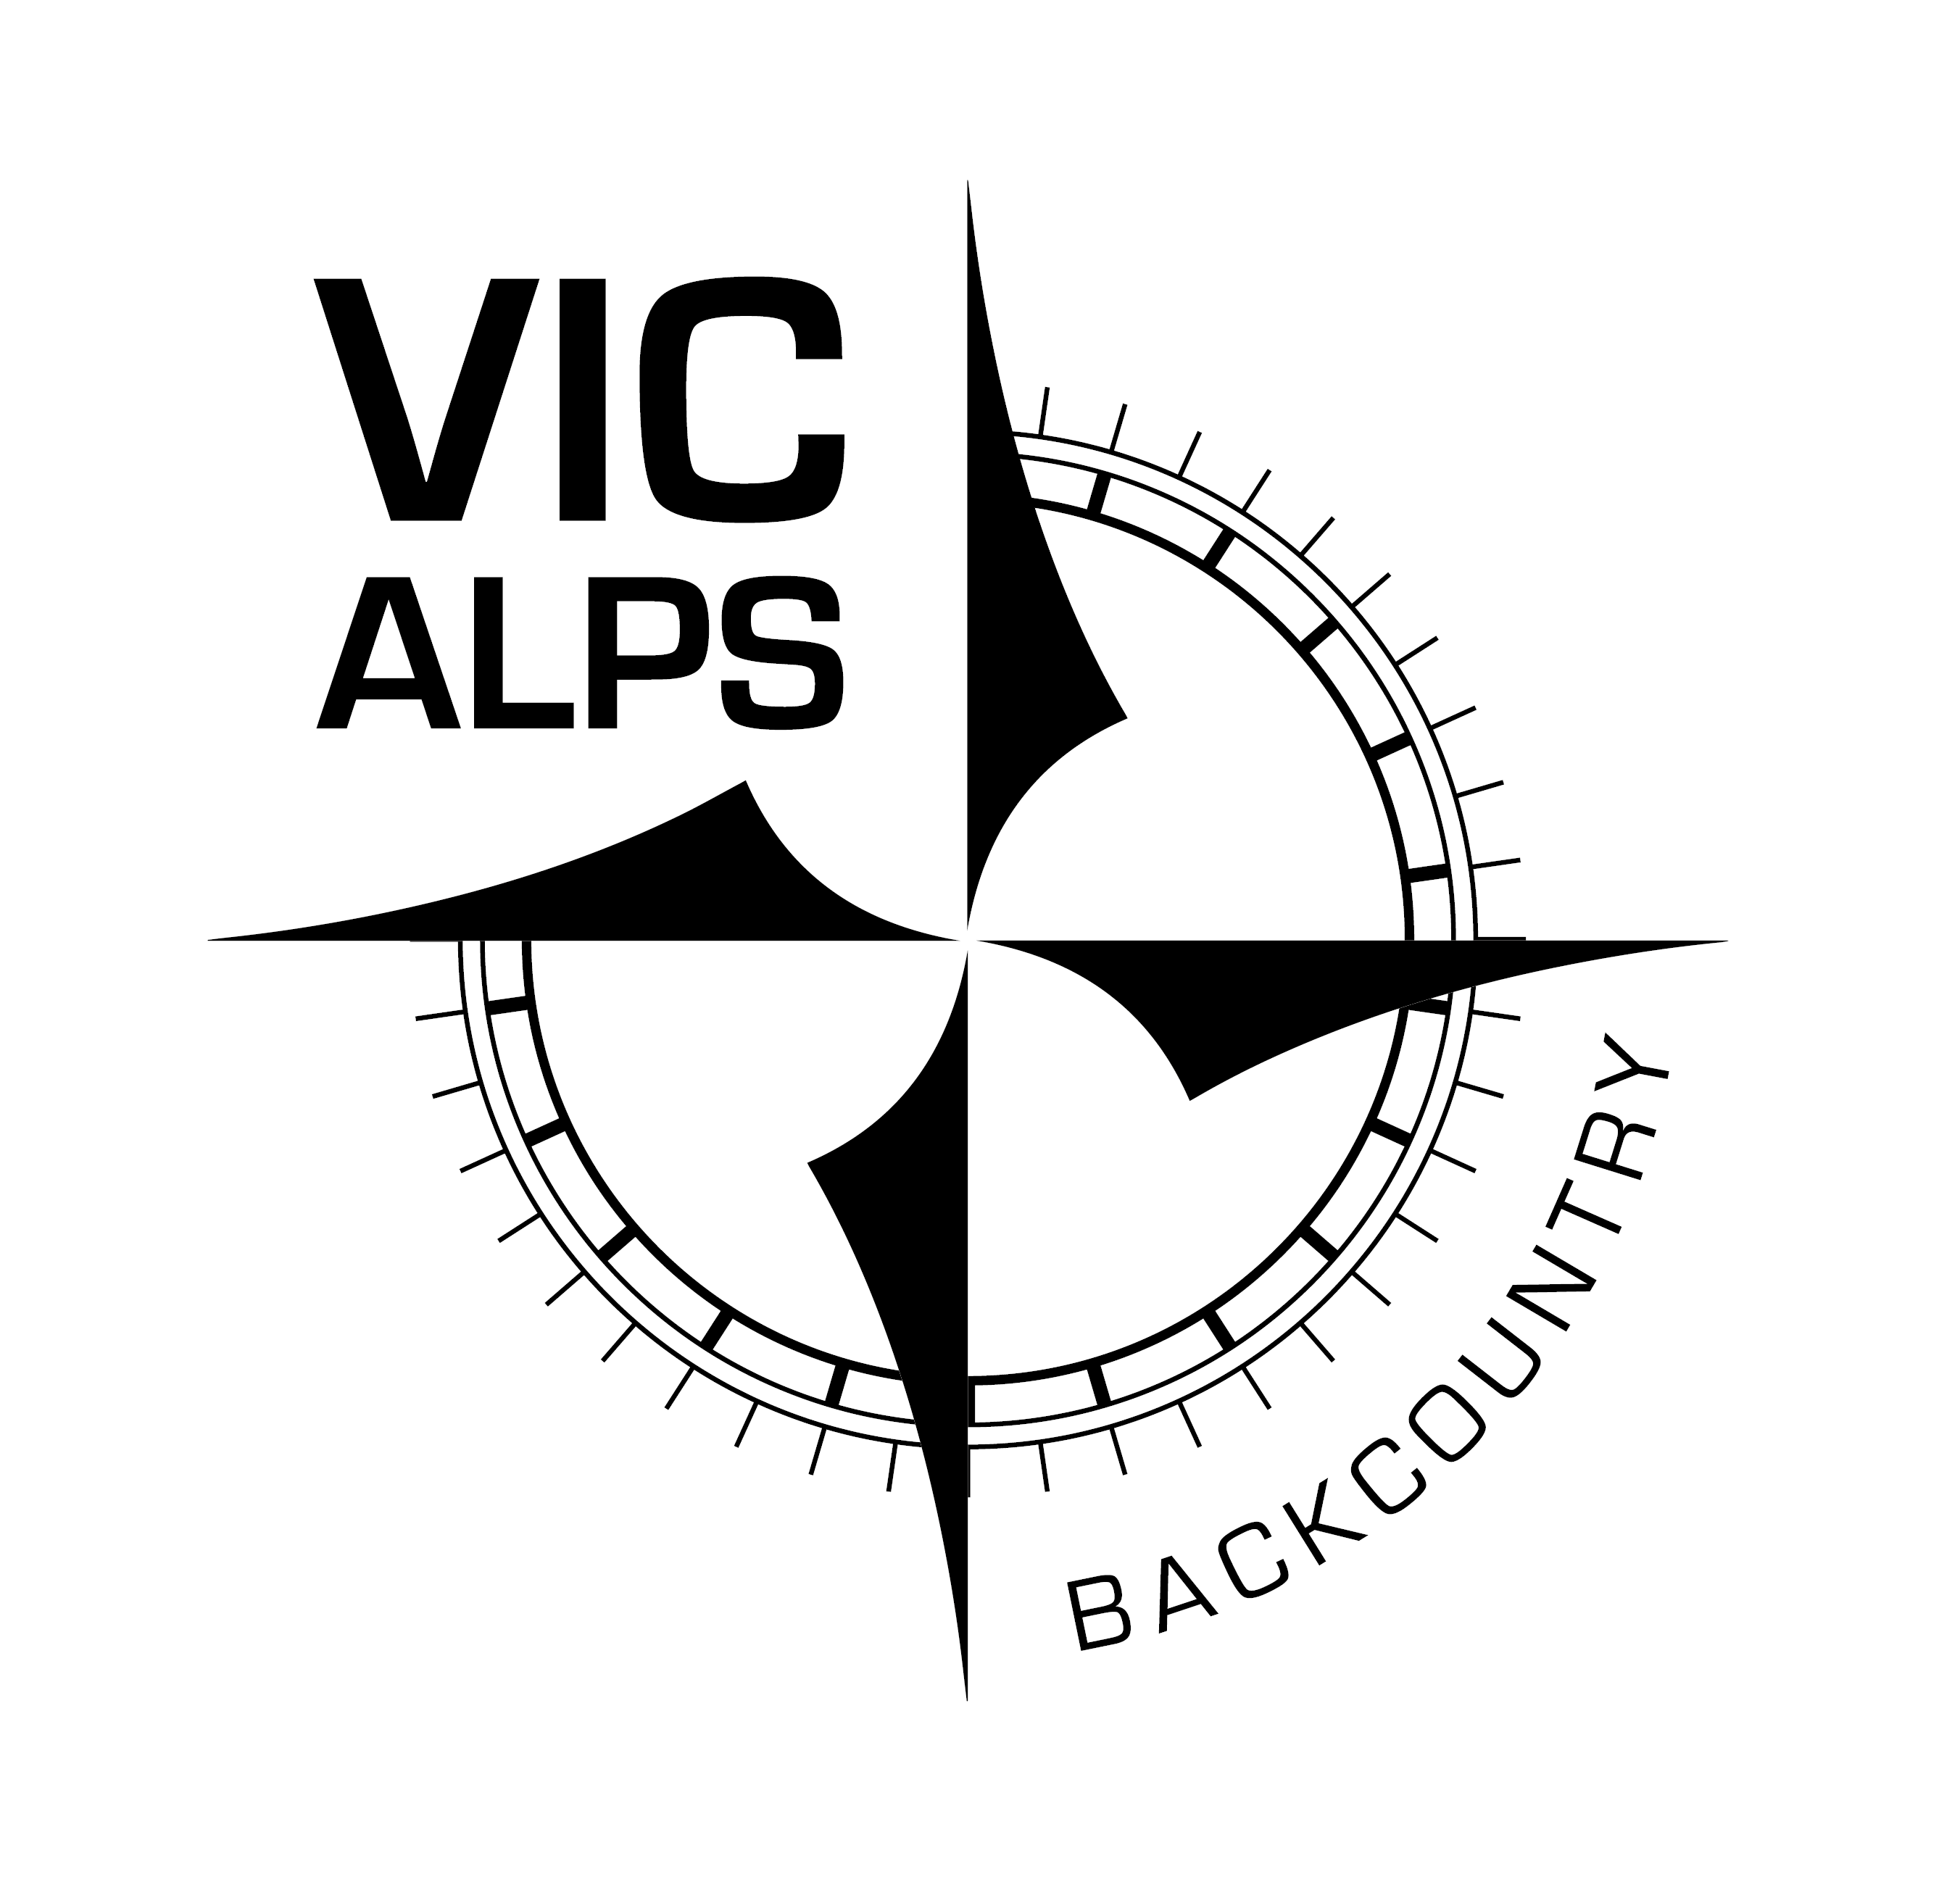 Vic Alps Back Country